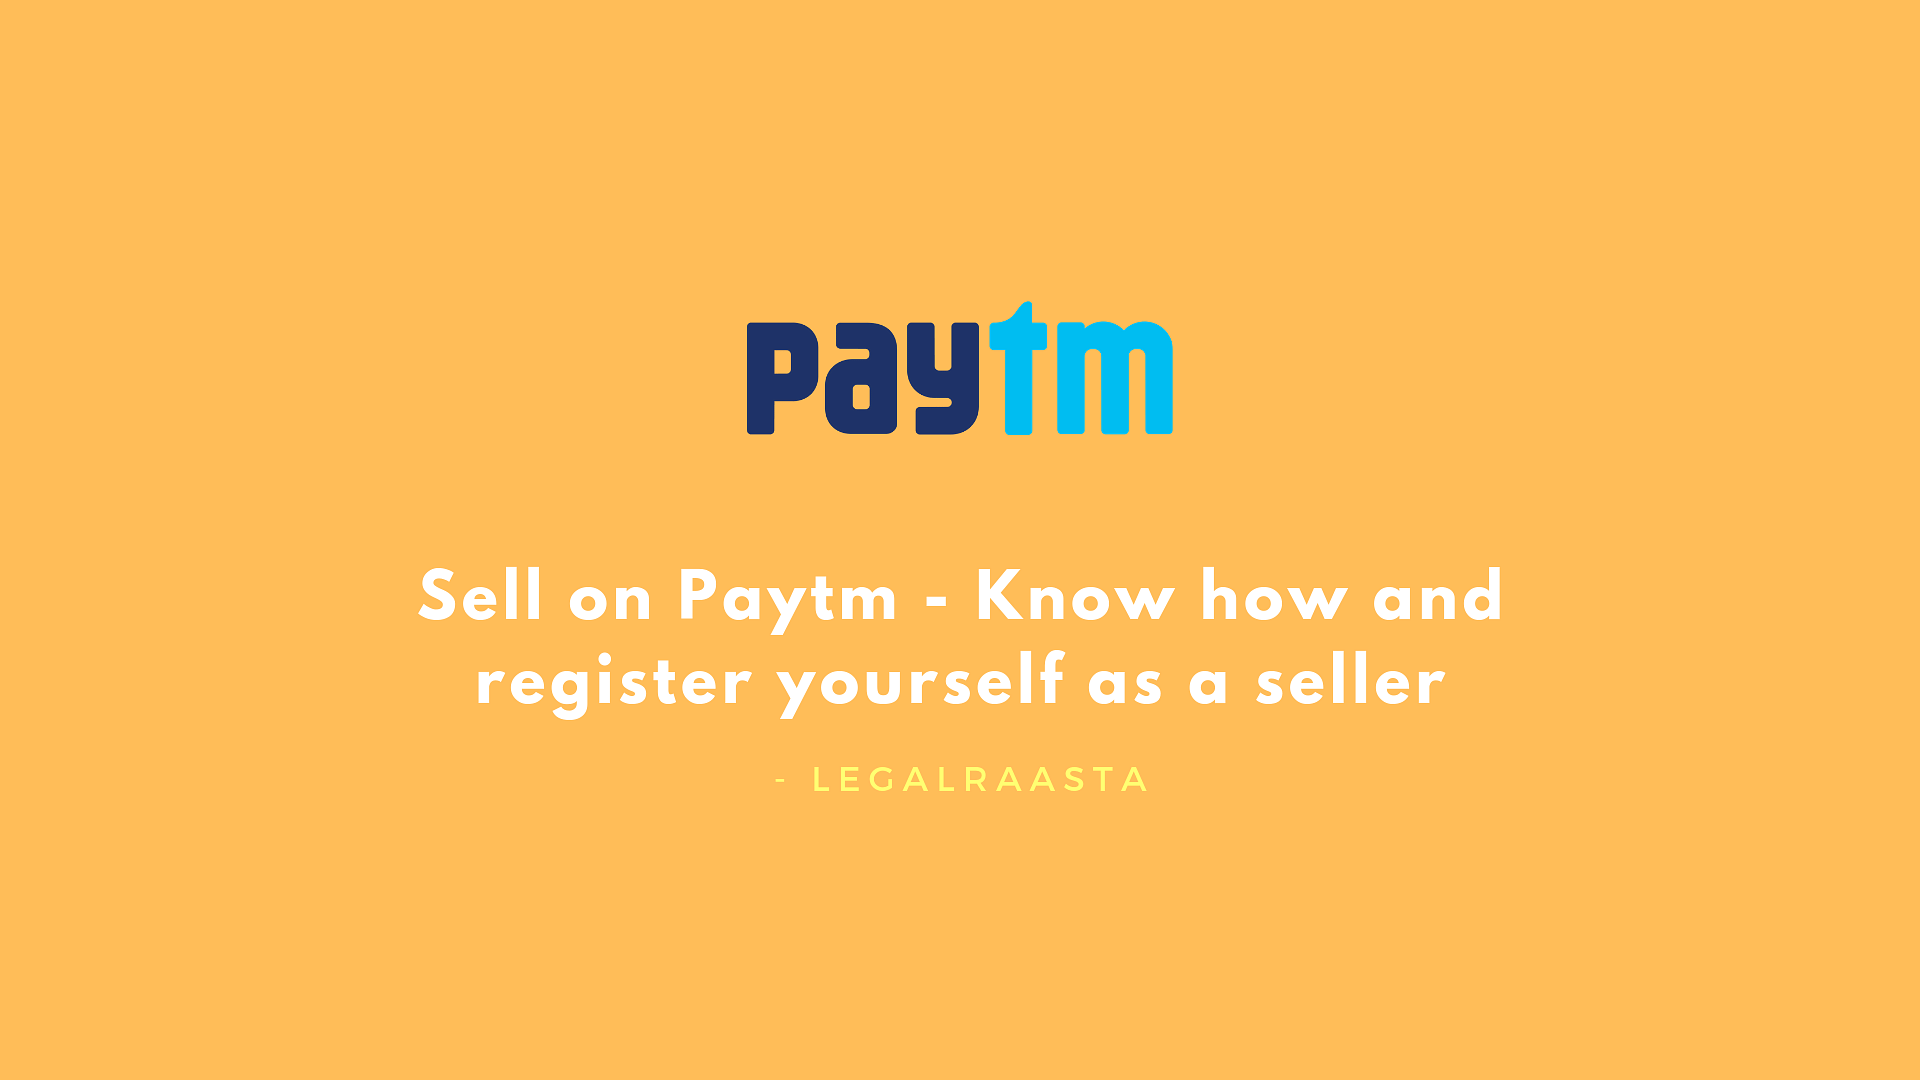 Sell on Paytm - Know how and register yourself as a seller